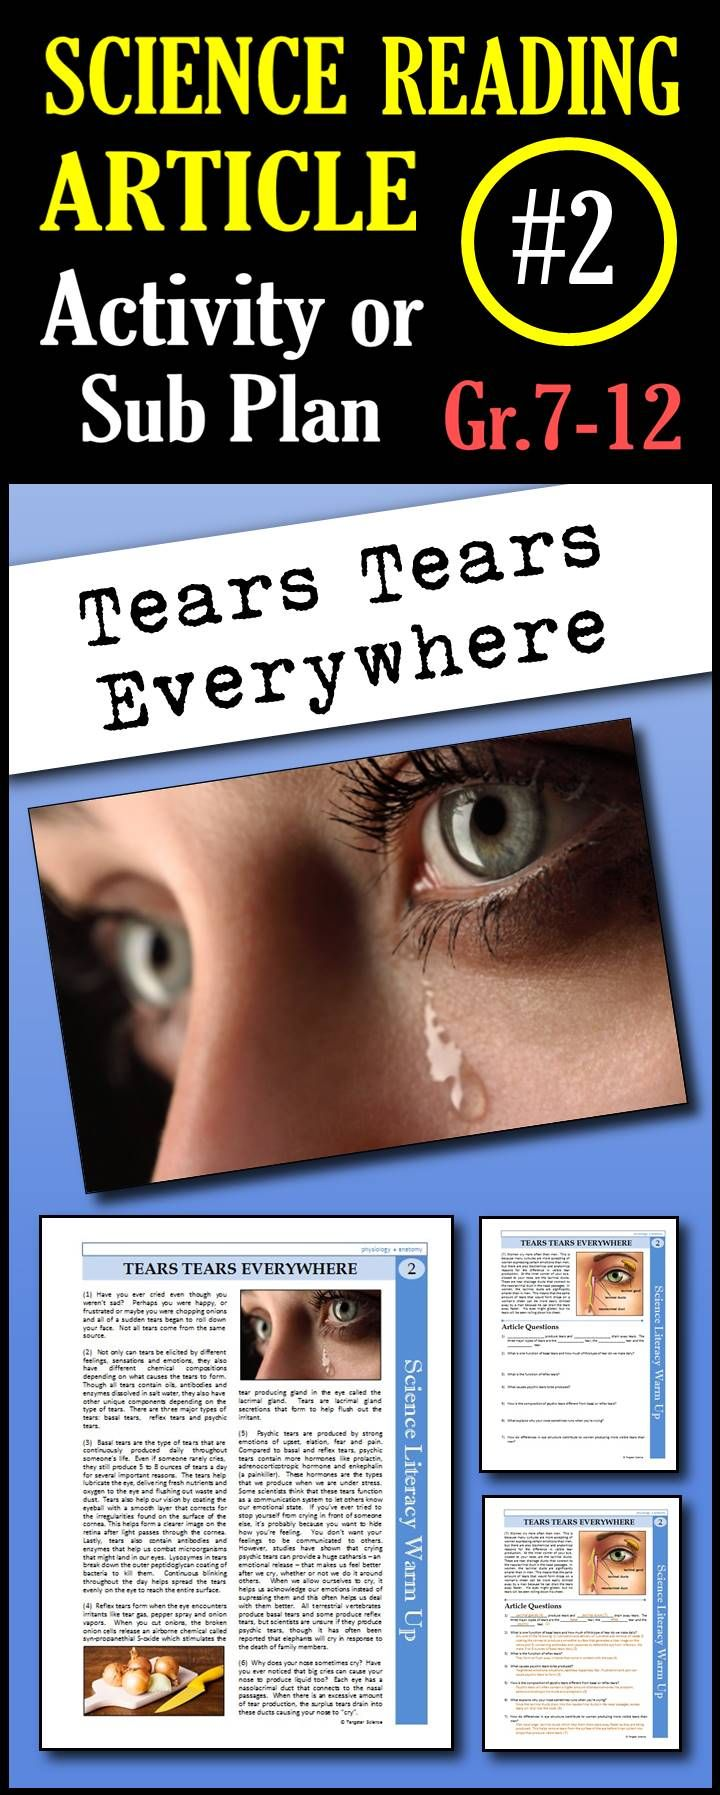 In This Article Students Will Read About The Differences In The Three Types Of Tears Humans Produce The Composition Science Reading Science Literacy Science